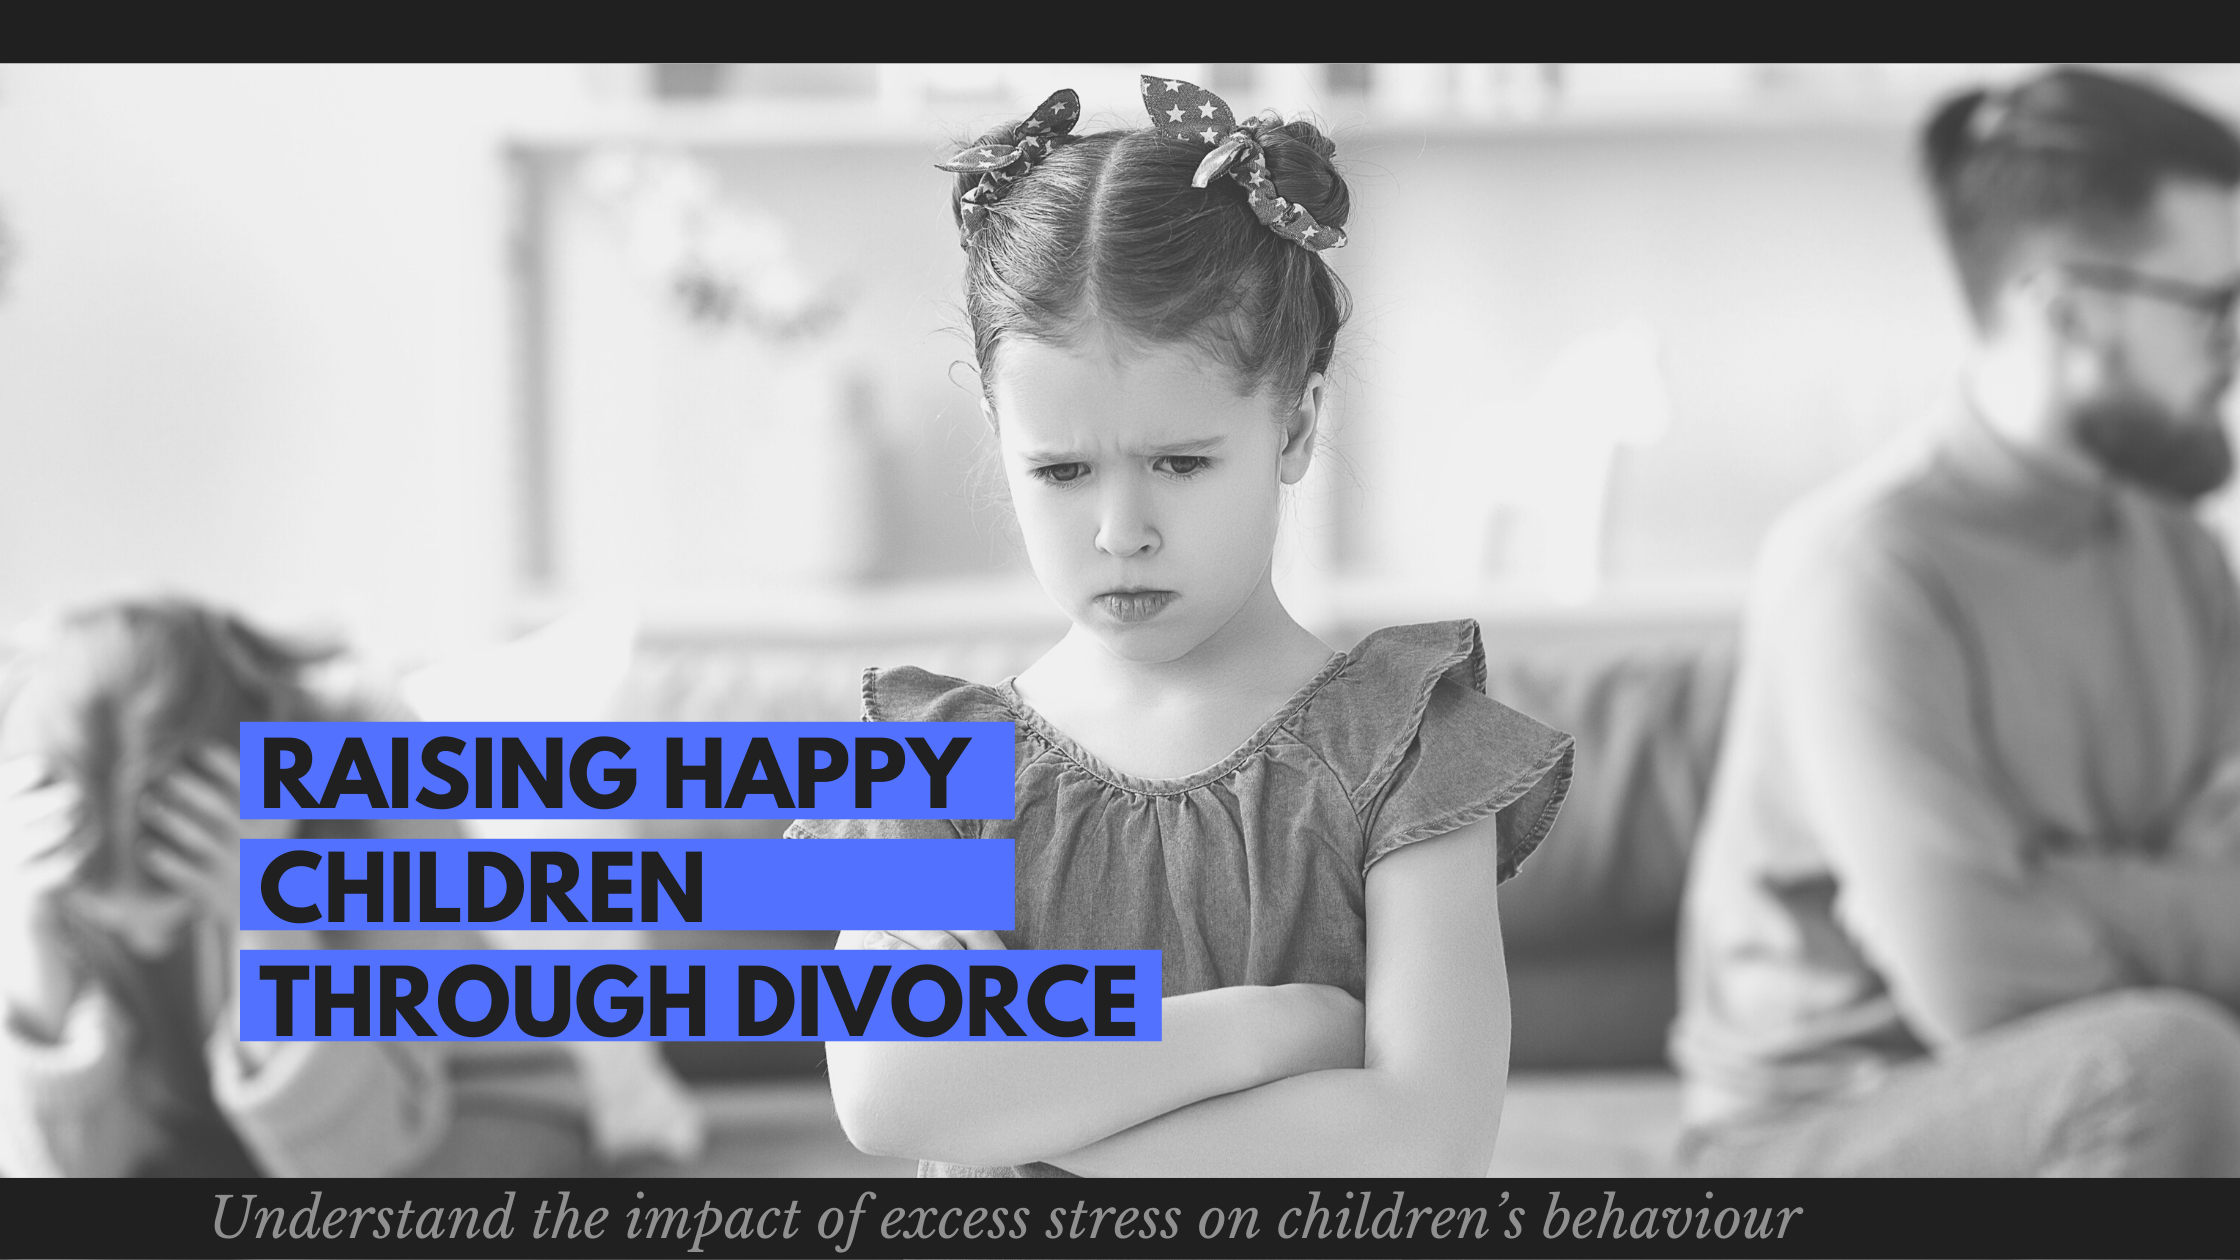 Raising Happy Children Through Divorce